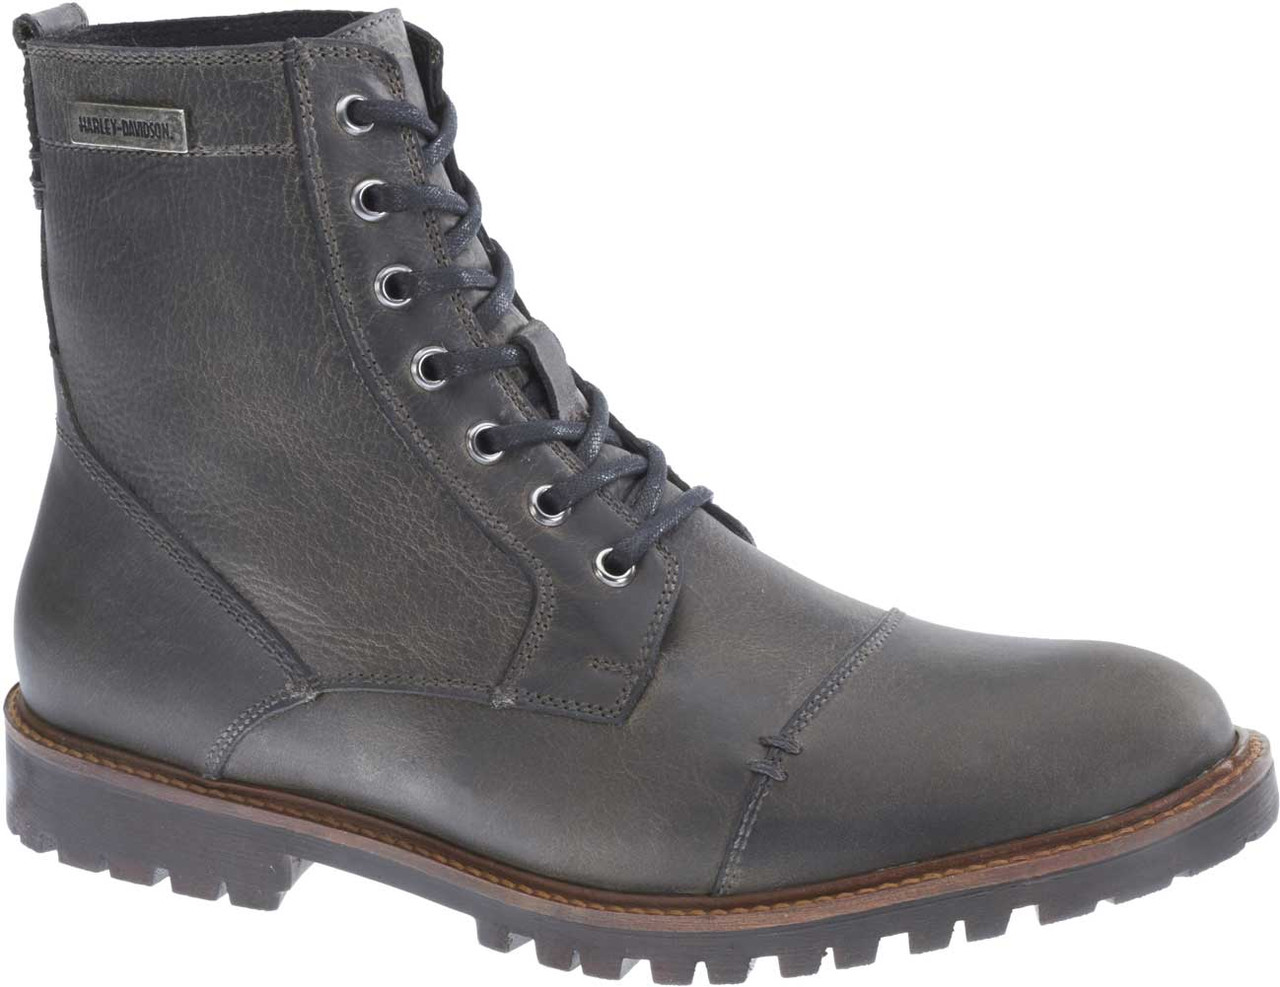 cce0f8850a2ac8 Harley-Davidson® Men s Aldrich 6-Inch Ash Grey or Brown Motorcycle Boots  D93353 - Wisconsin Harley-Davidson